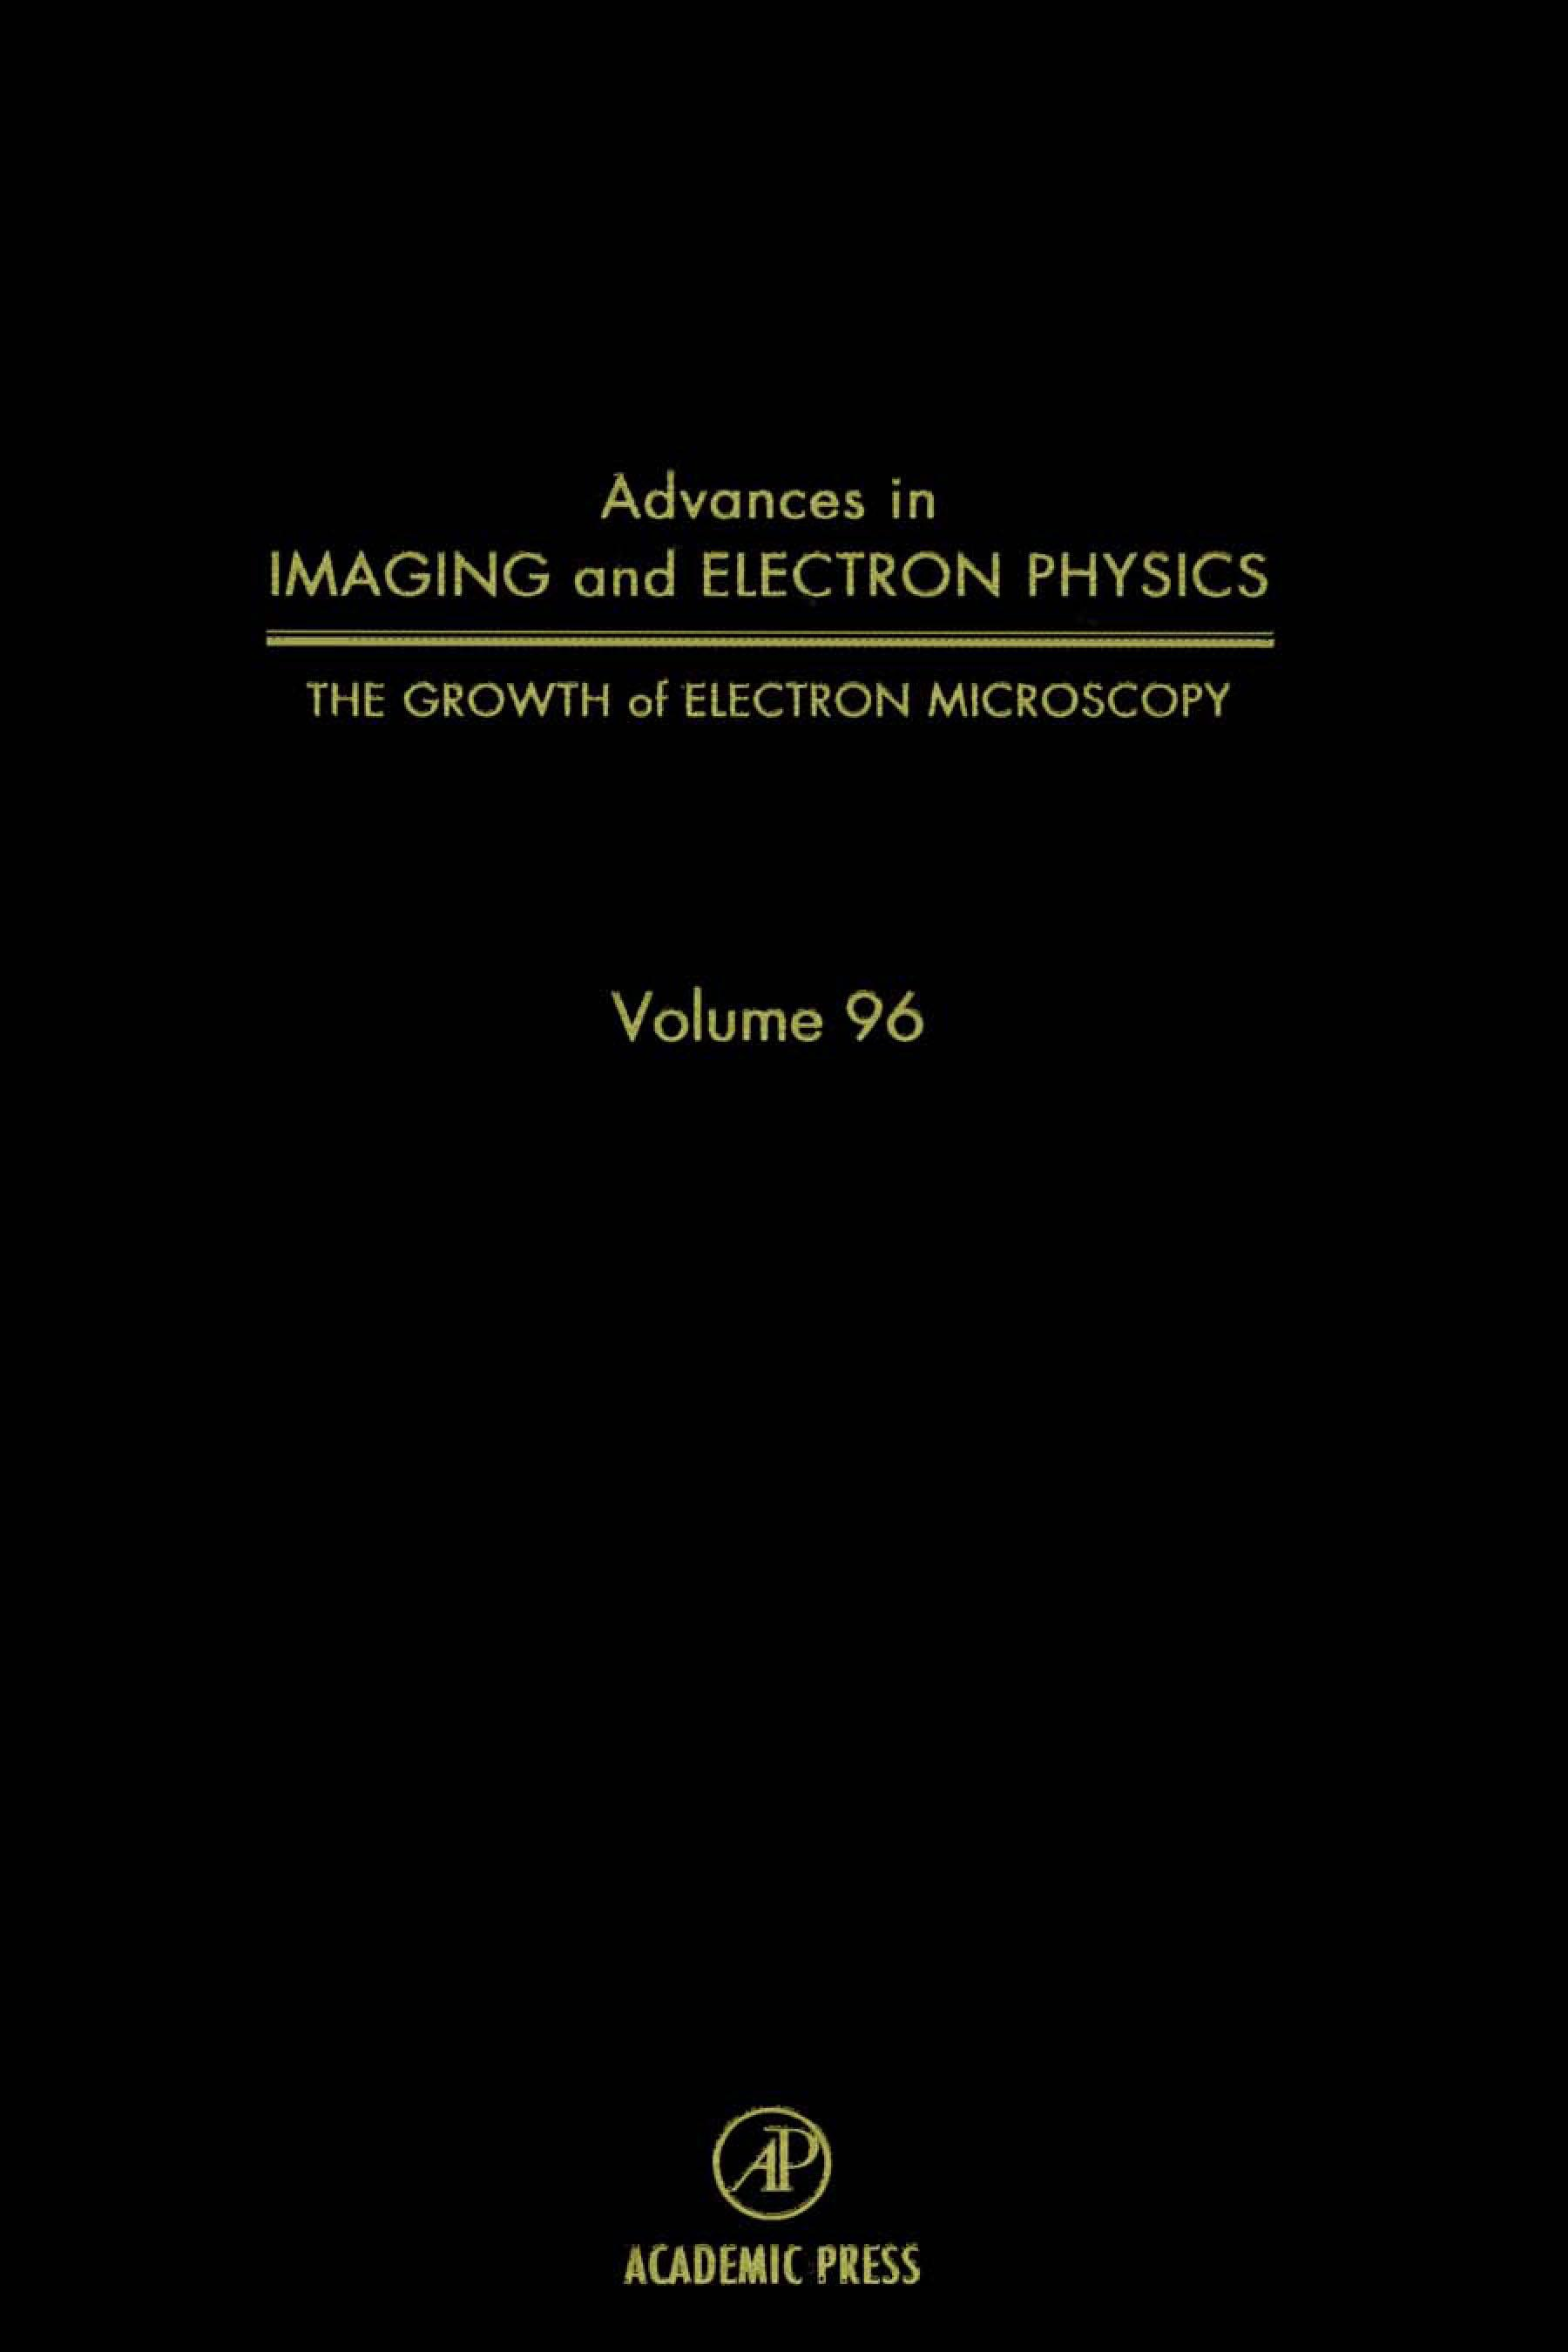 The Growth of Electron Microscopy